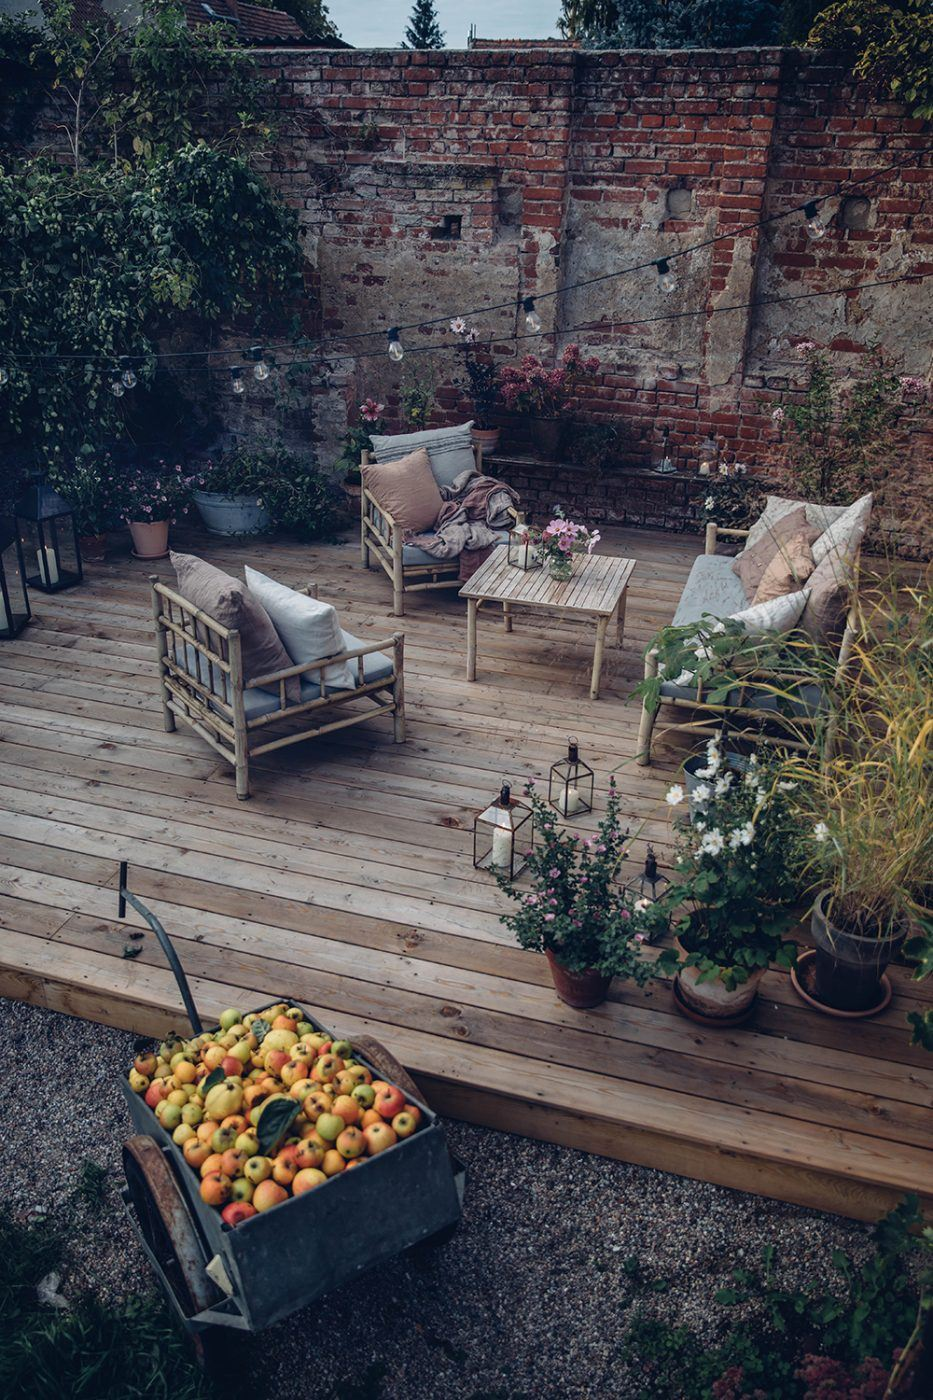 Image for Our new Terrace in the Countryside